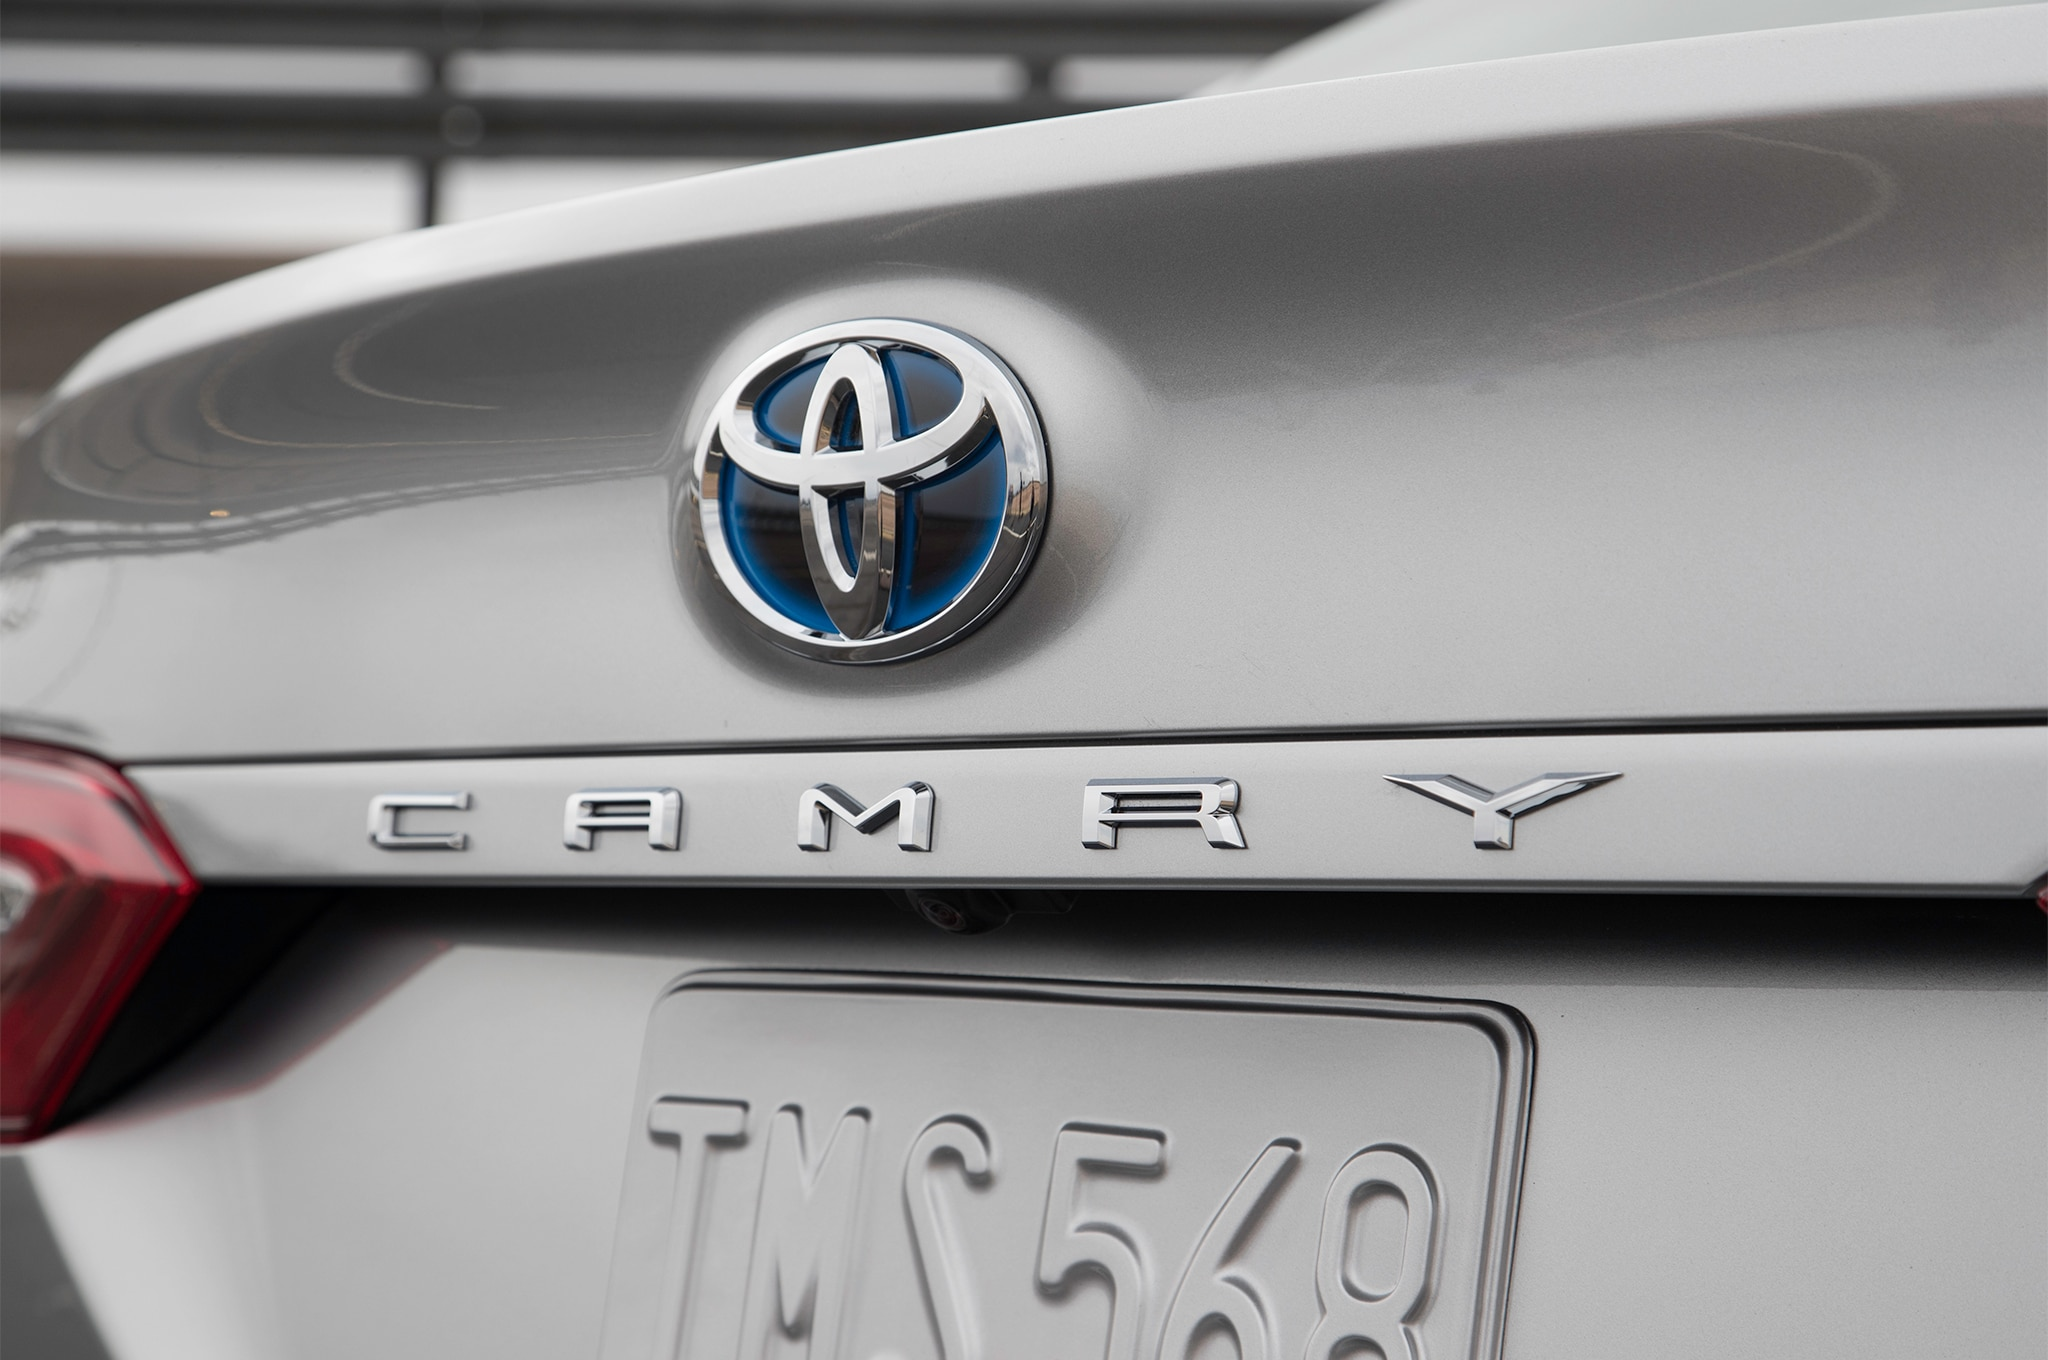 all new camry logo berat kijang innova 20 things you didn t know about the 2018 toyota automobile show more